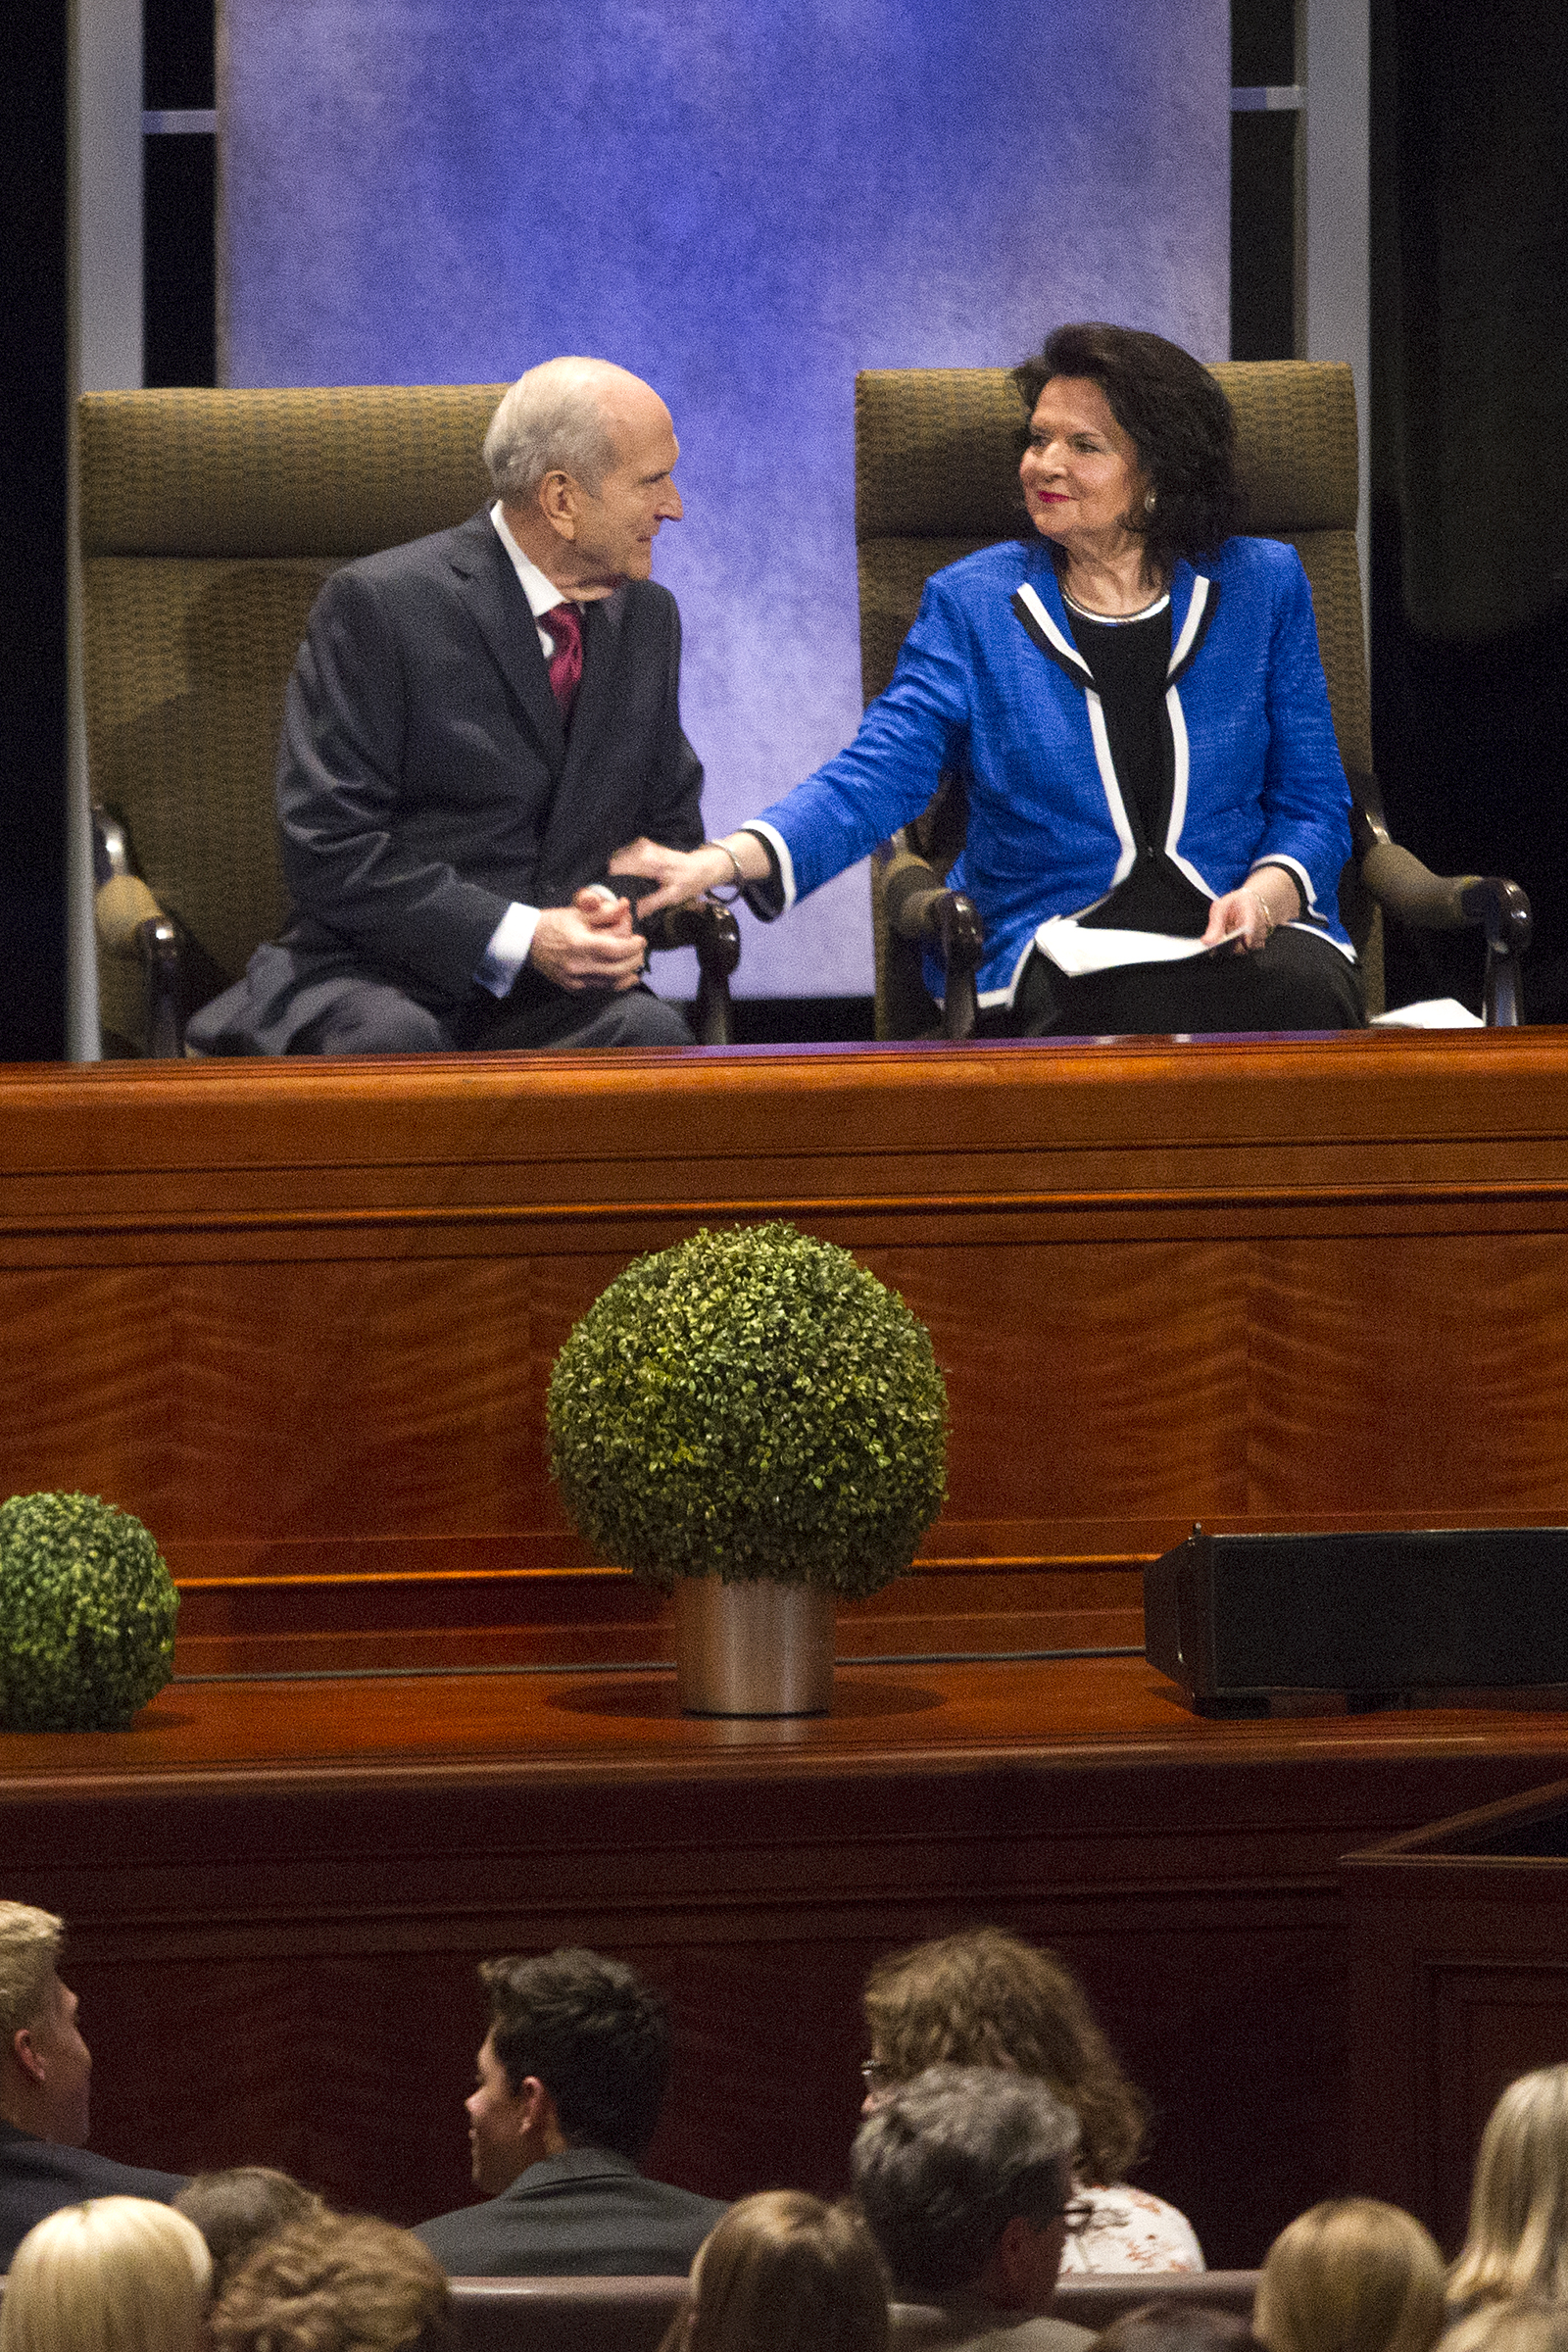 President Russell M. Nelson of The Church of Jesus Christ of Latter-day Saints sits with his wife, Sister Wendy Nelson, during the Worldwide Youth Devotional at the Conference Center in Salt Lake City on Sunday, June 3, 2018.